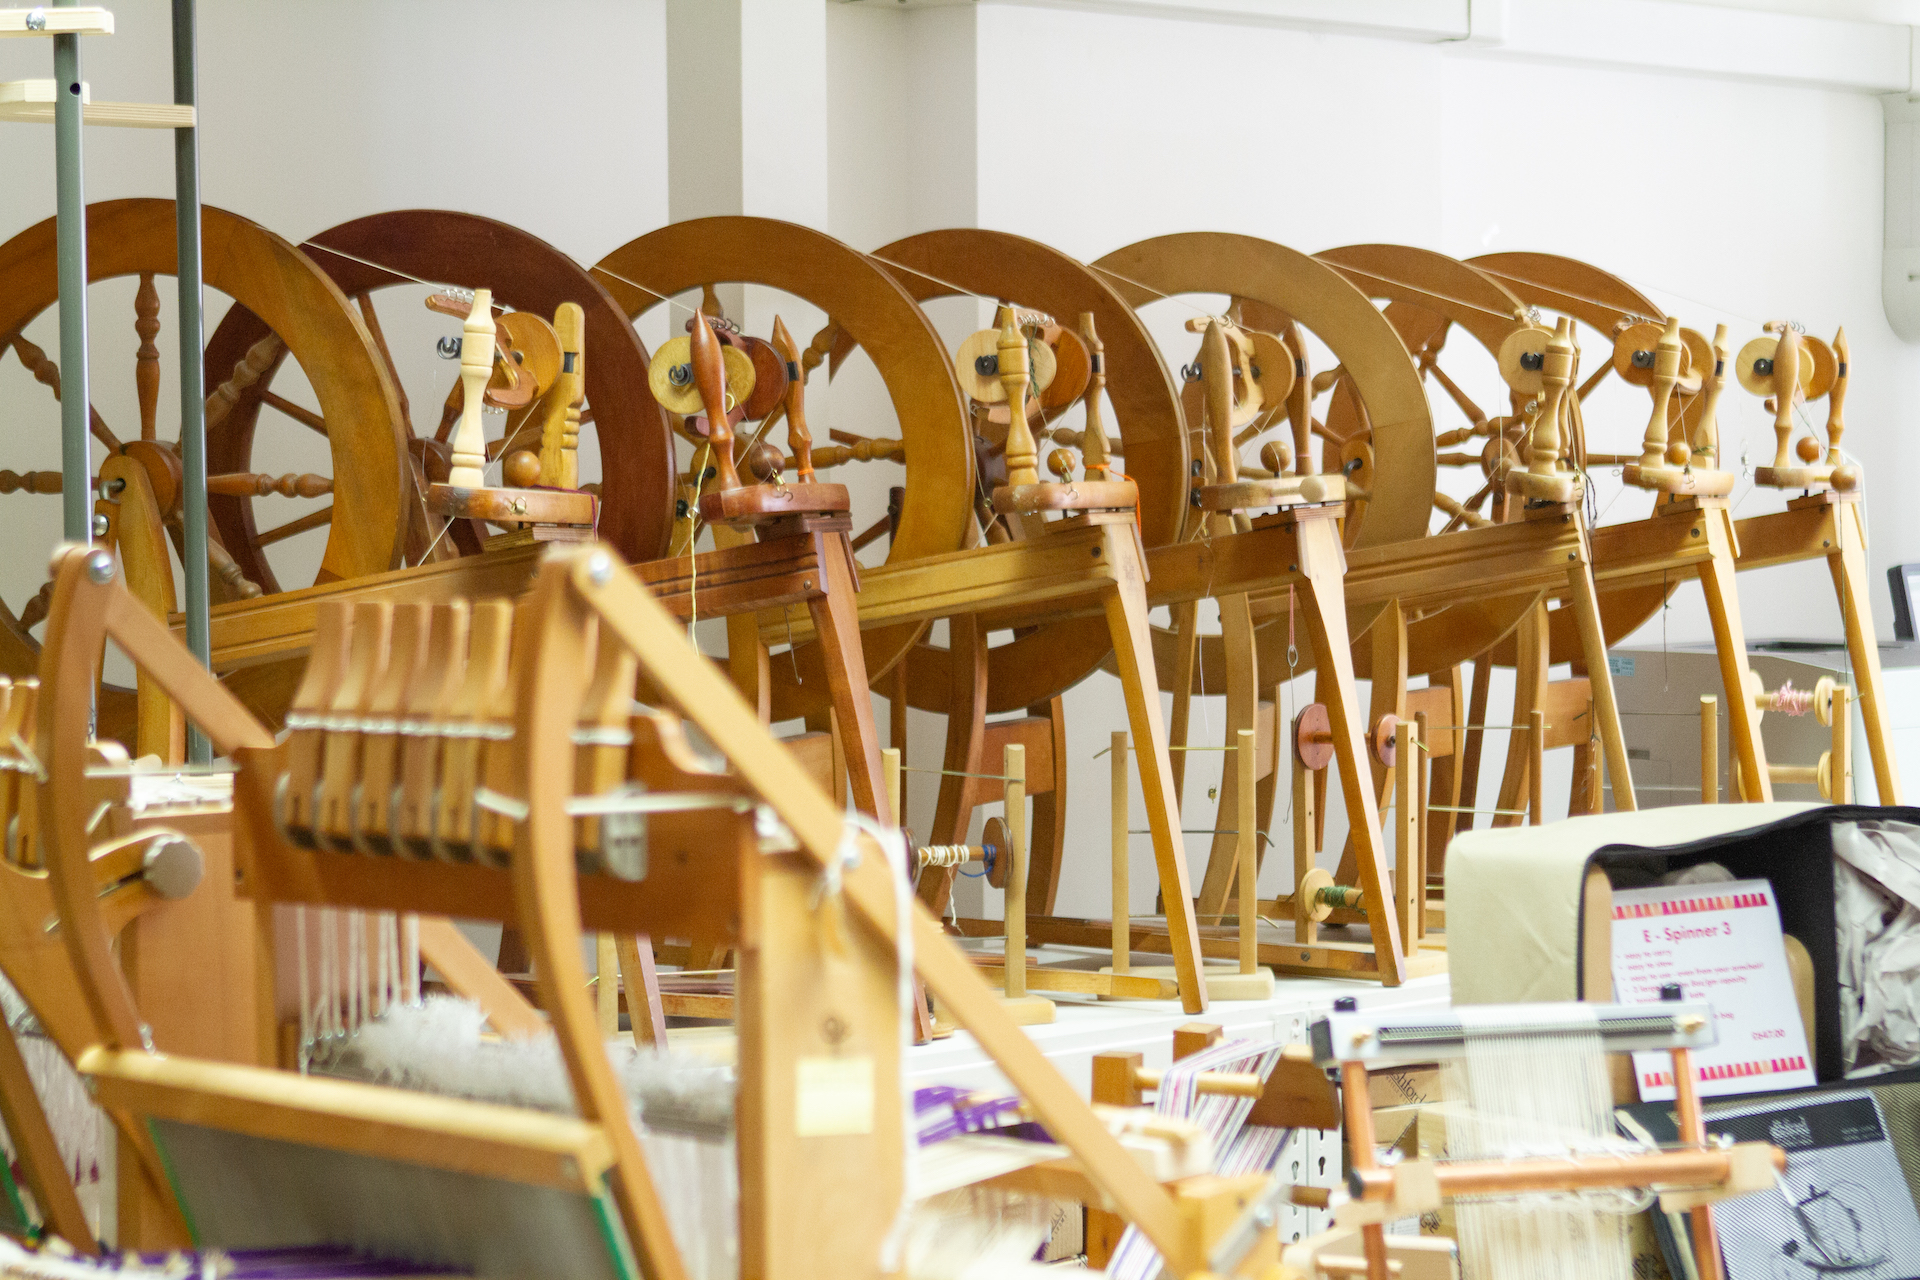 Fancy getting started with spinning or weaving? Handweavers has the tools and equipment to get you going - and workshops too.